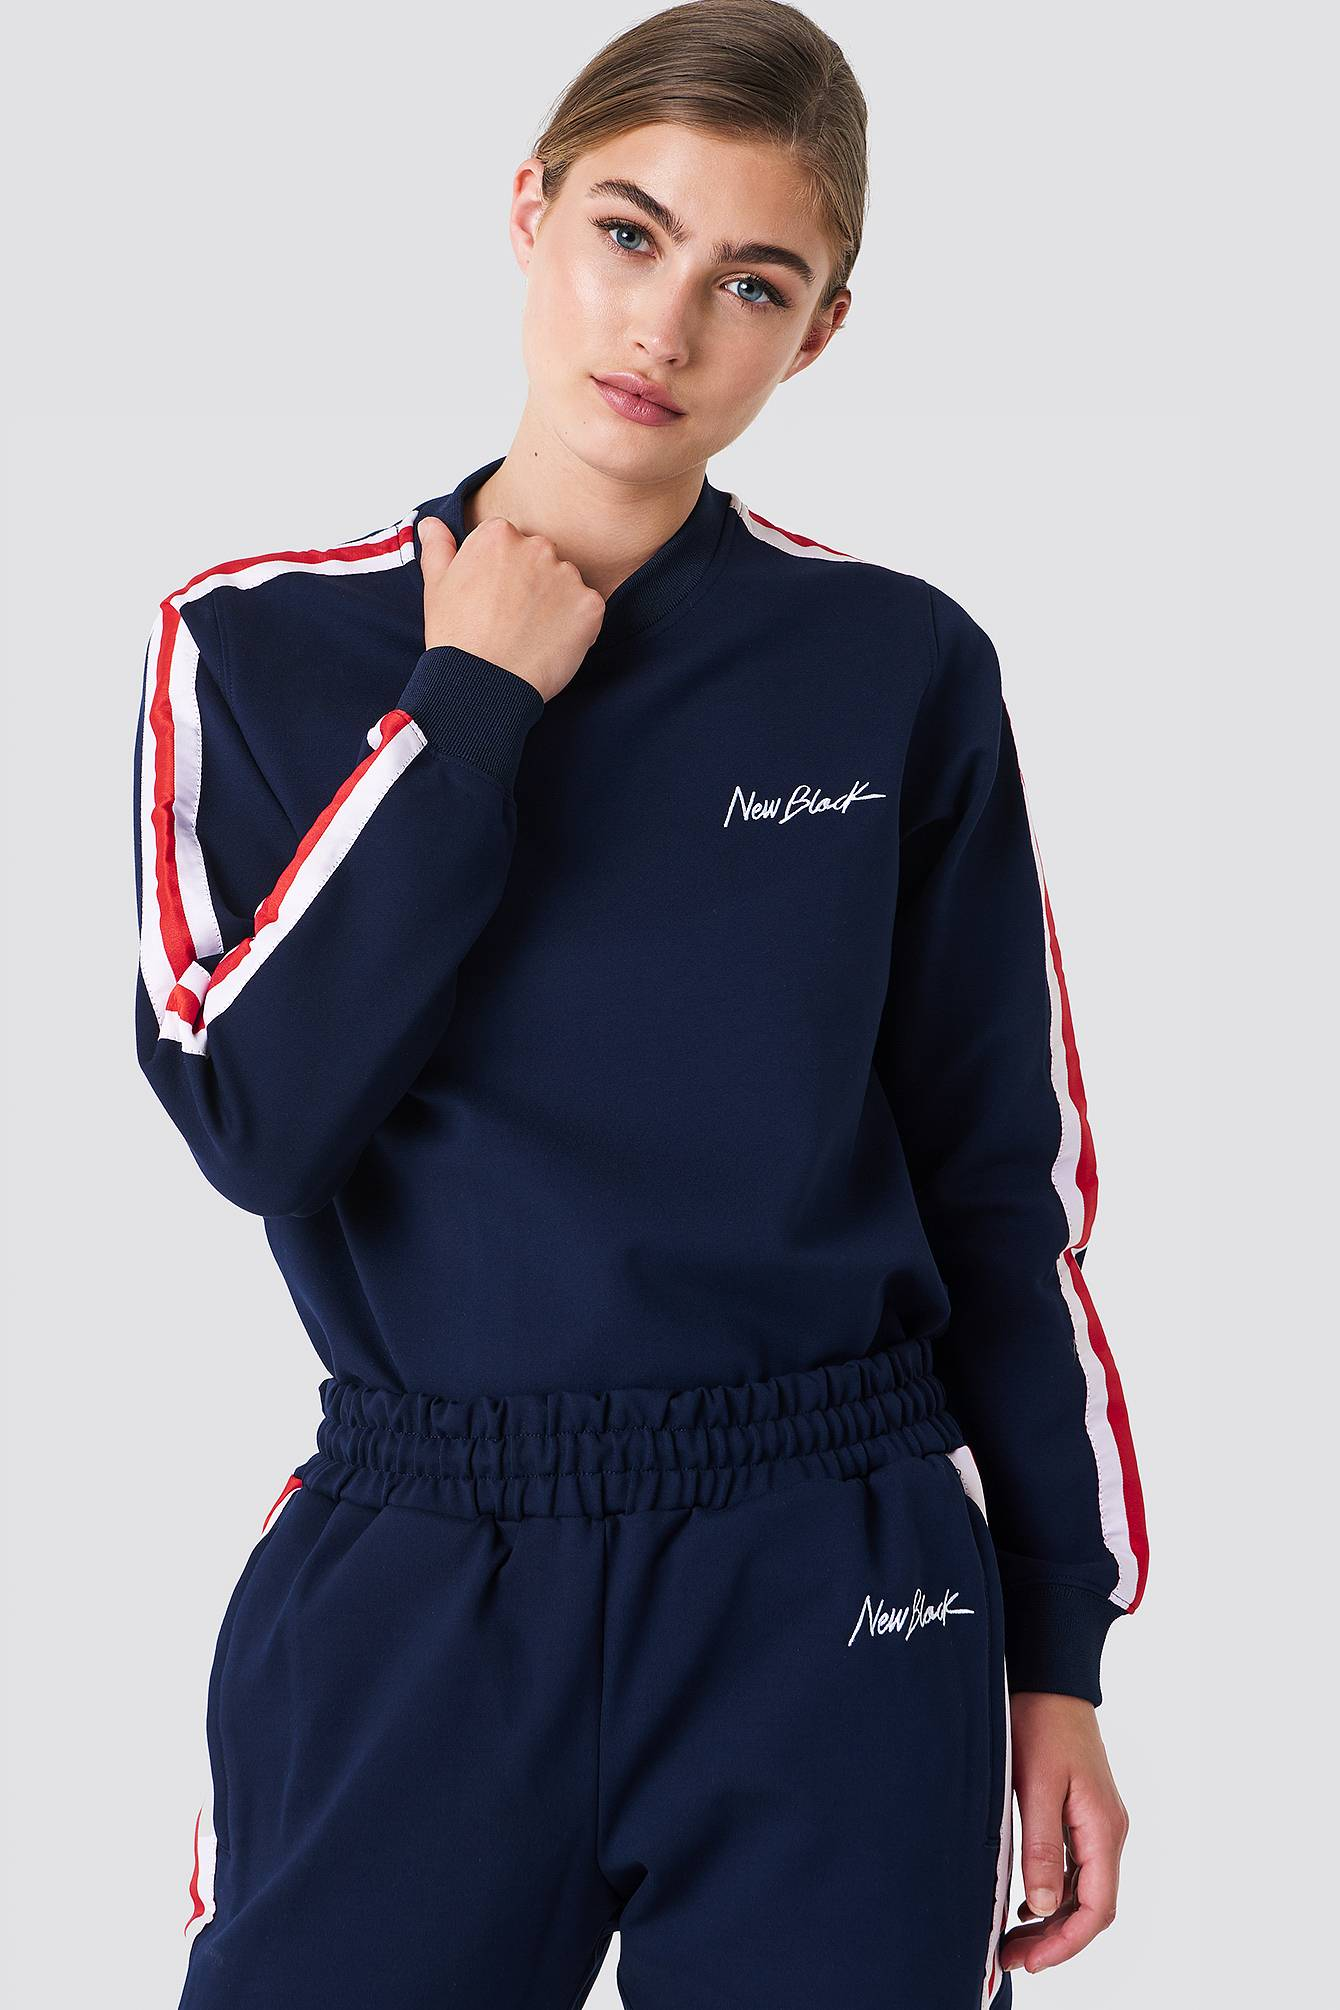 New Black Road Crew Sweater - Multicolor,Navy